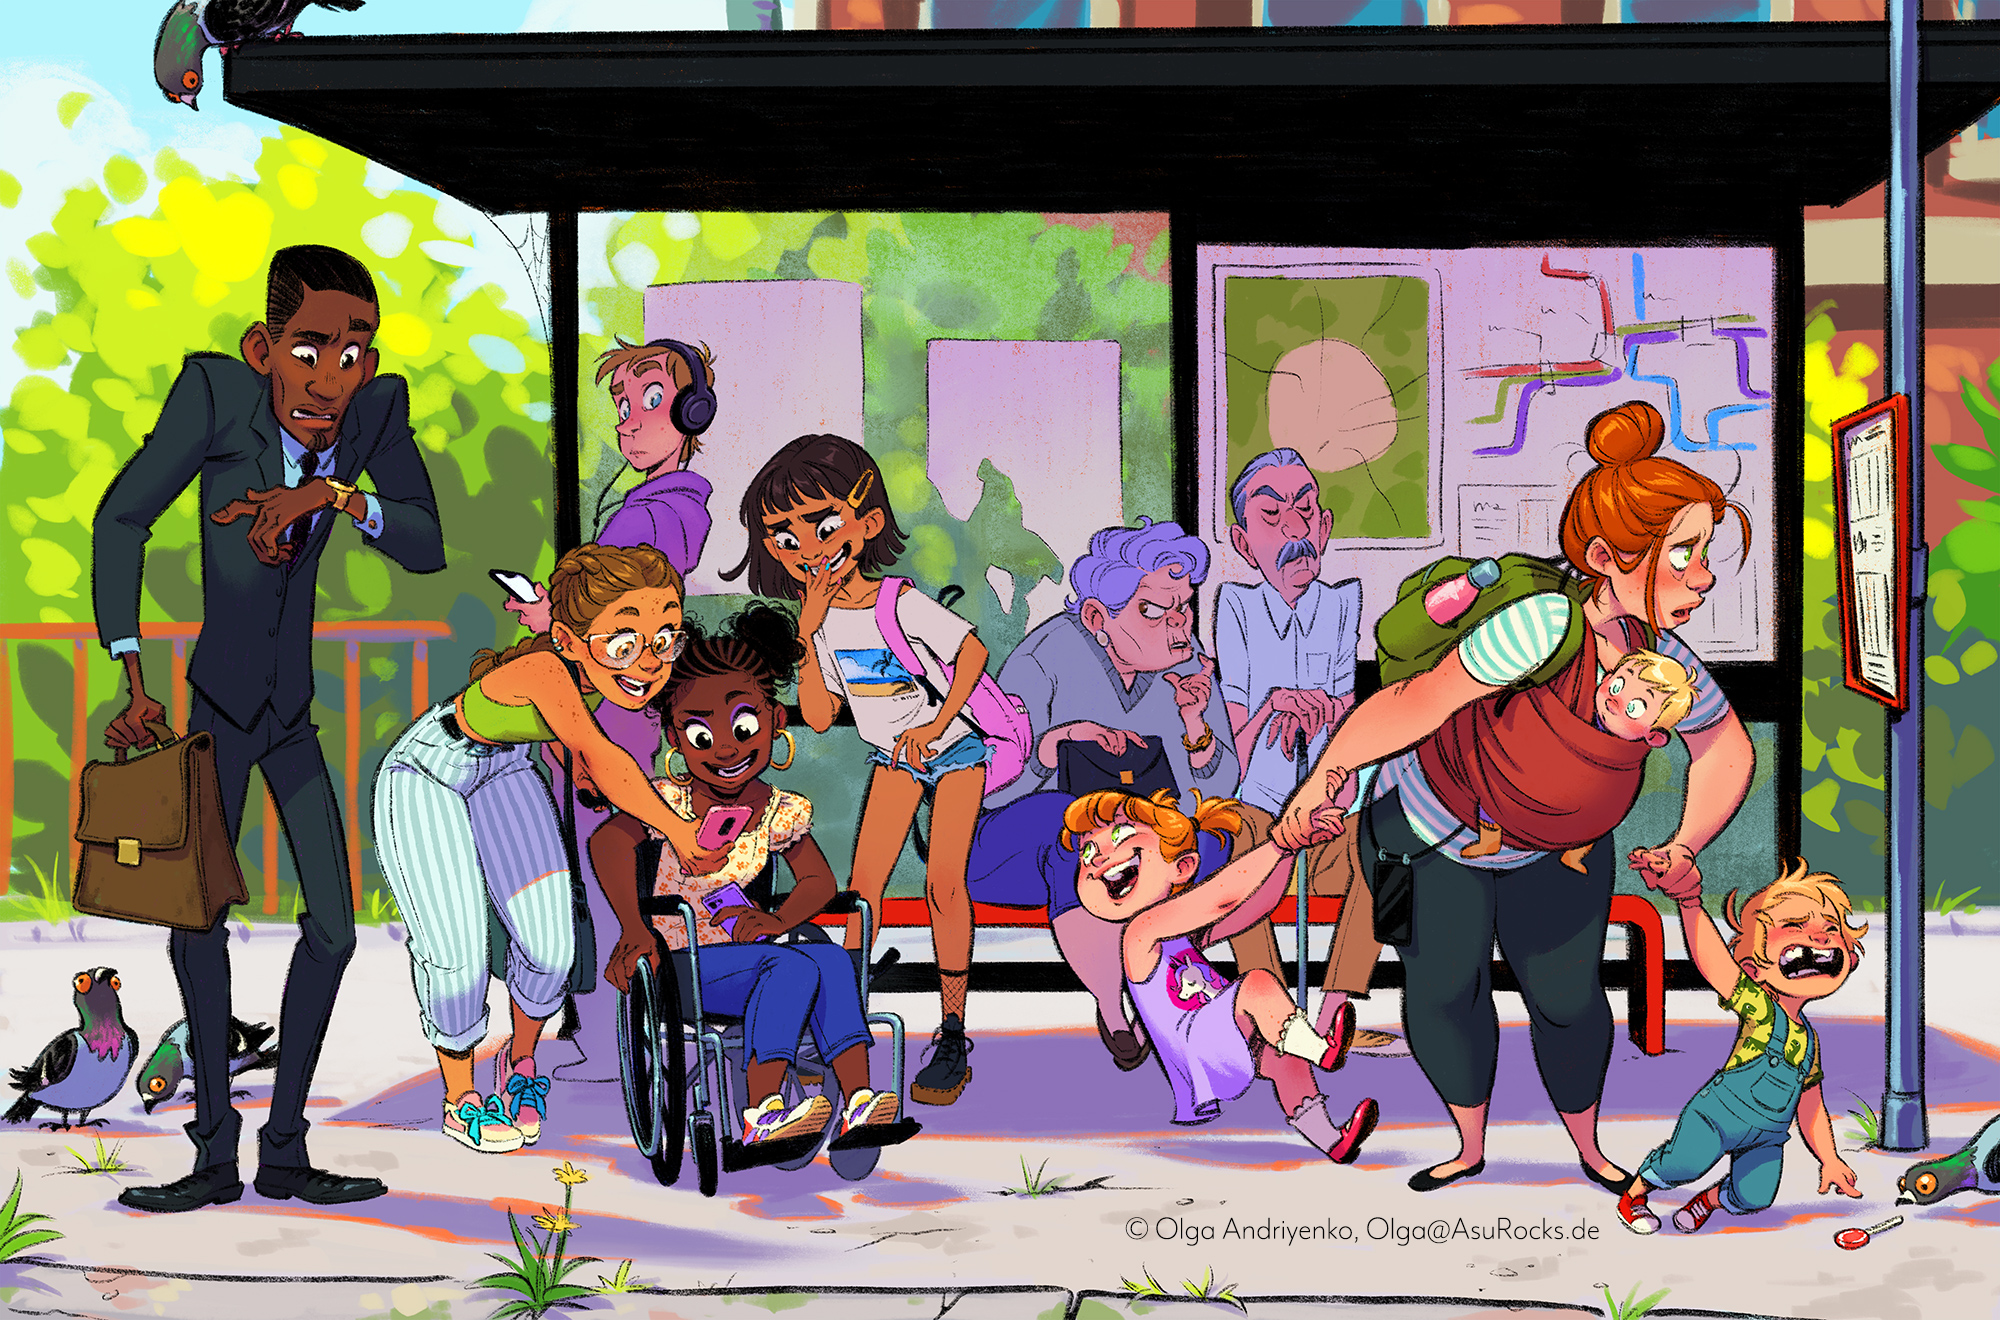 bus stop illustration with diverse characters